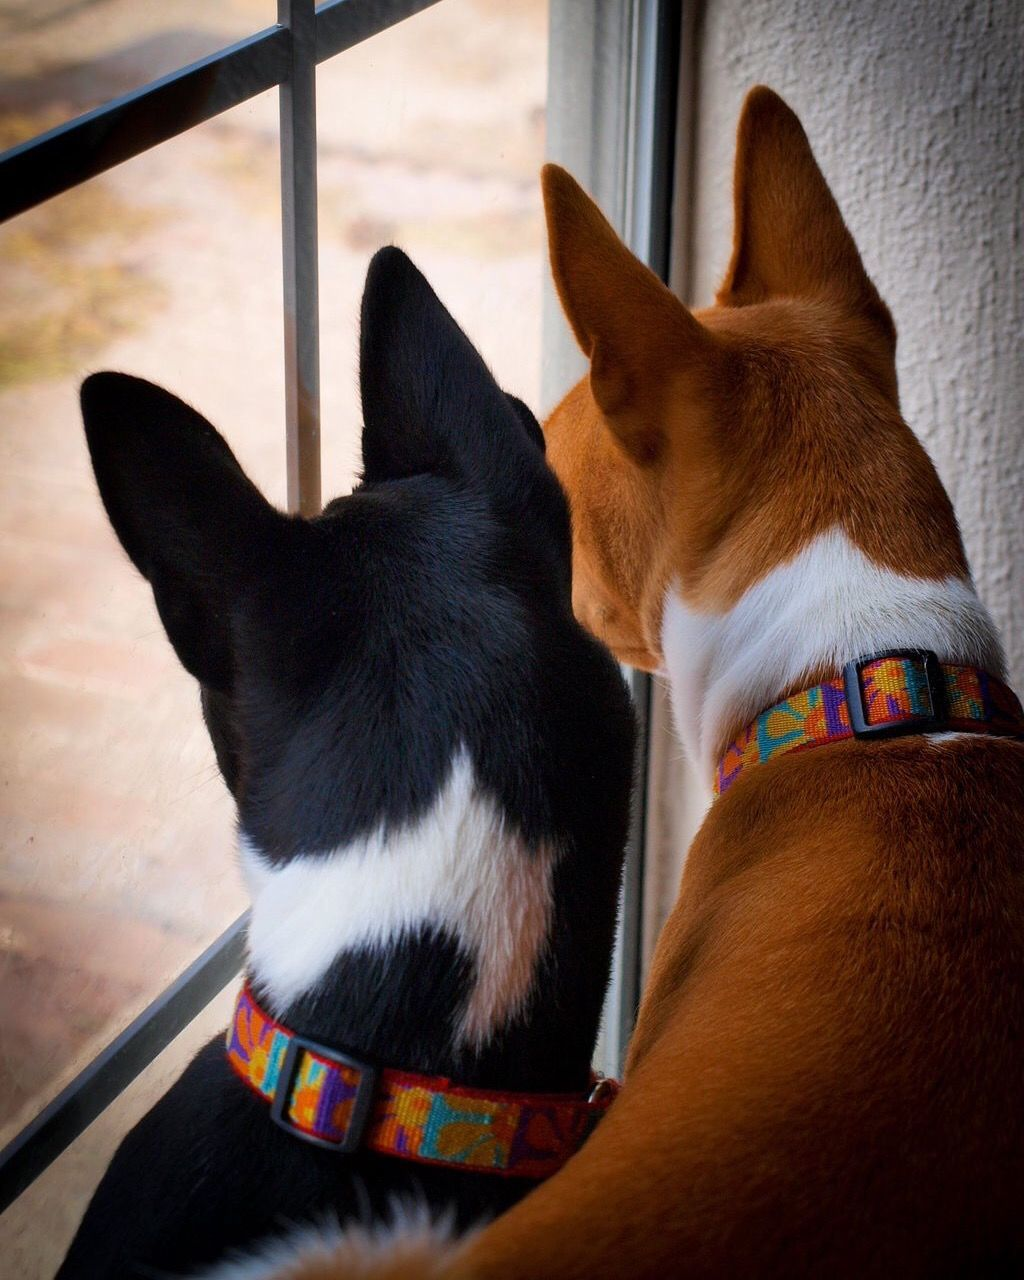 Close-Up Of Dogs By Window At Home